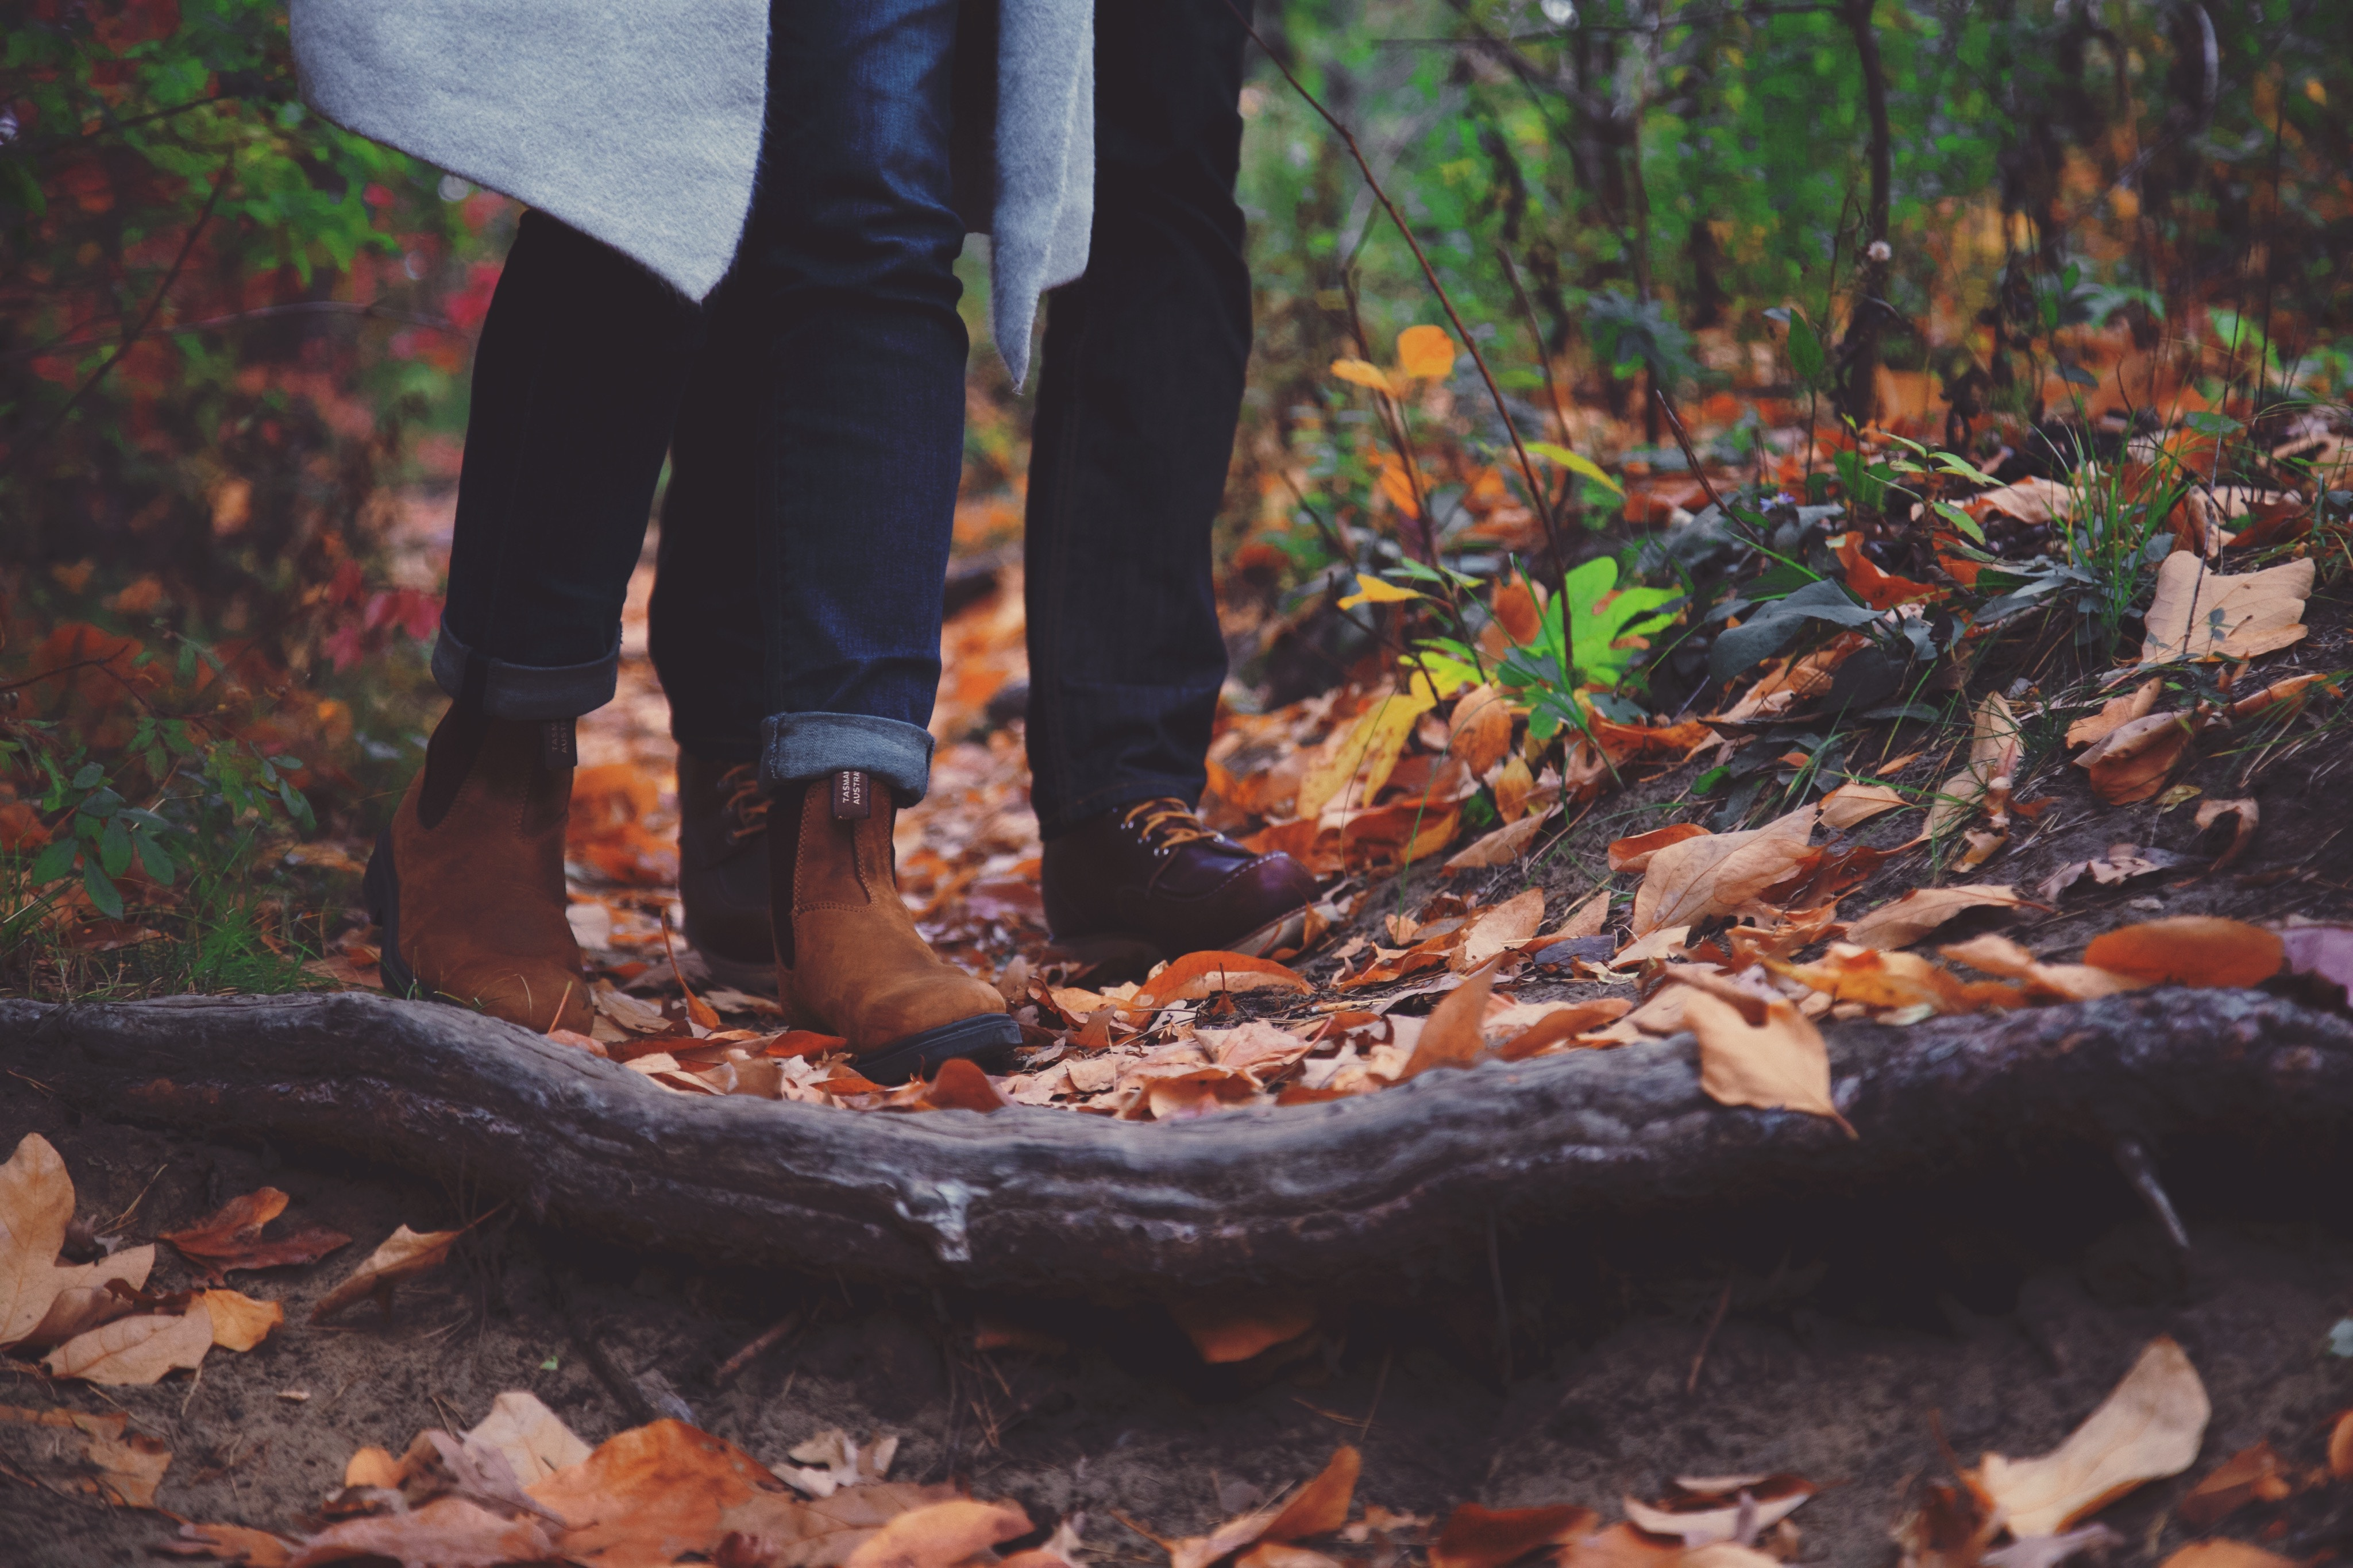 Make The Most Of Fabulous Fall! Get Outside